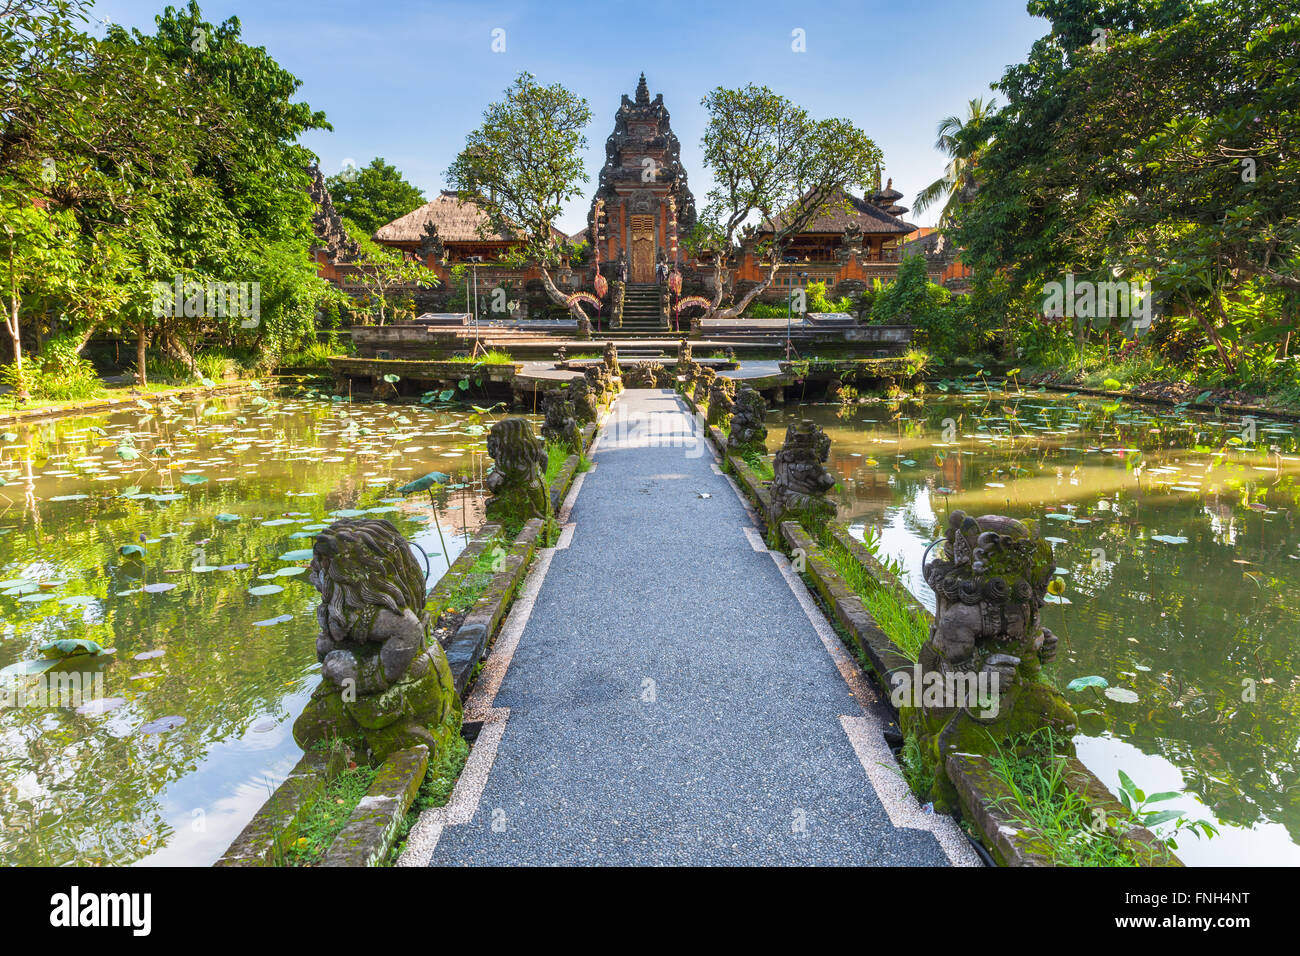 Pura Saraswati Temple with beatiful lotus pond, Ubud, Bali, Indonesia - Stock Image